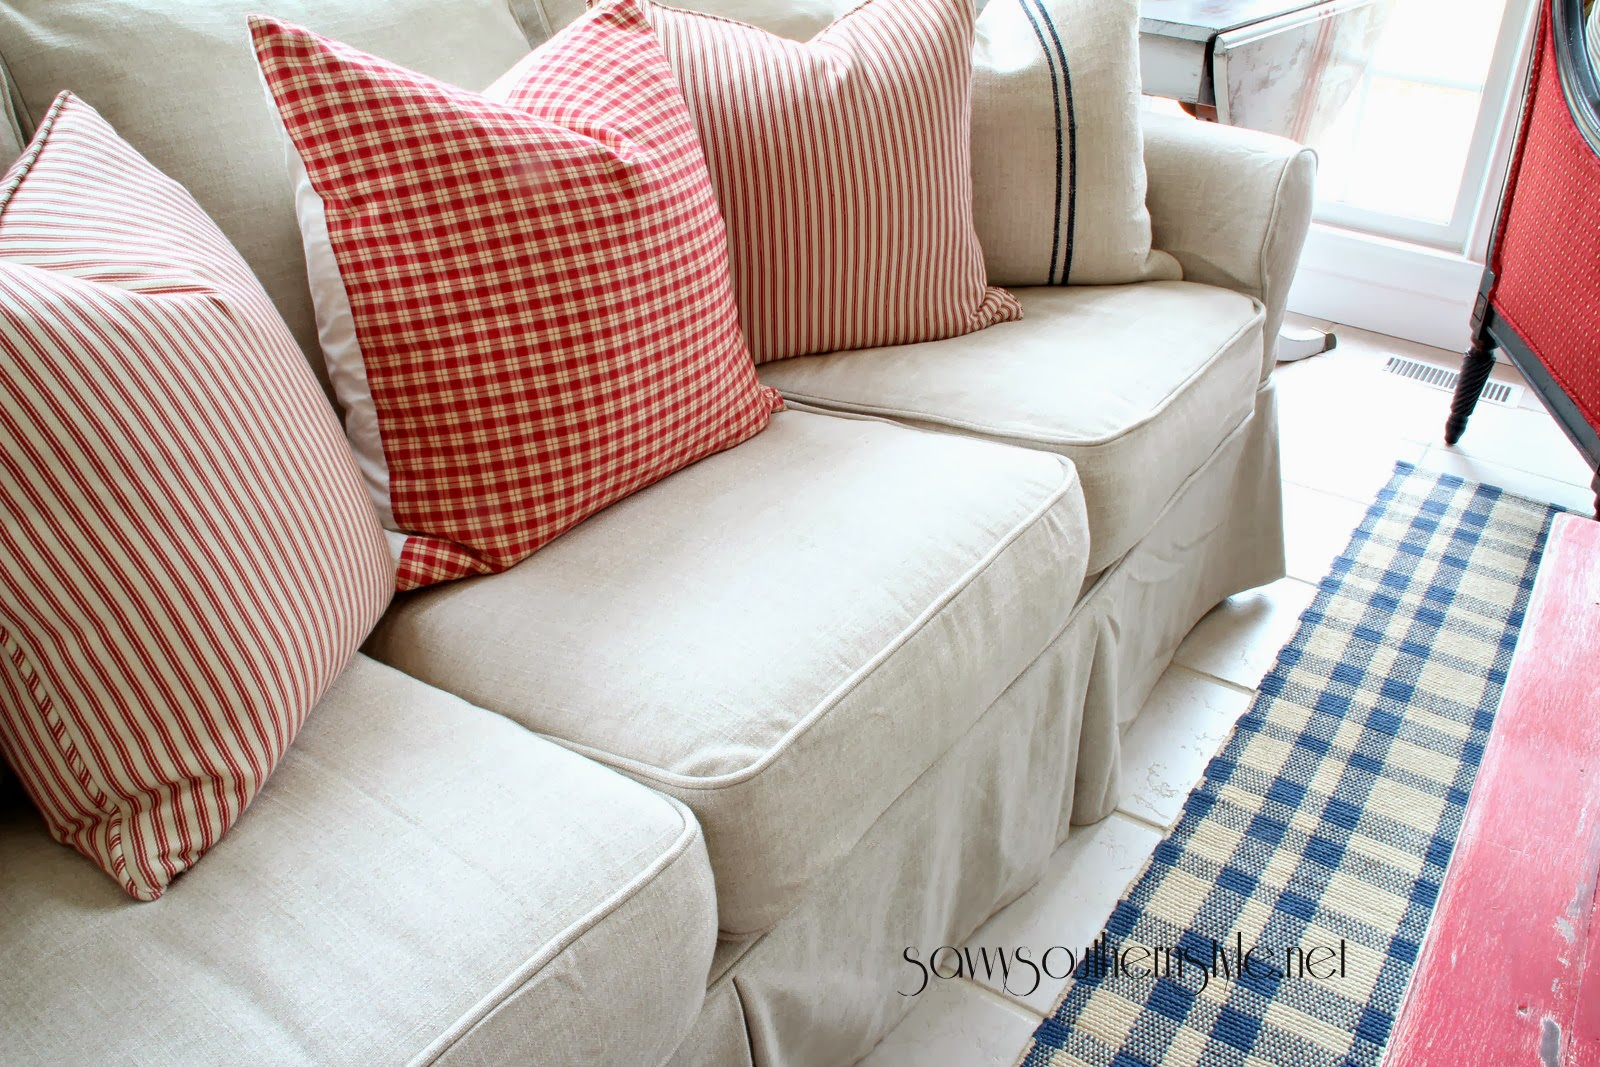 beach house sofa slipcover how to make slipcovers for without sewing custom and couch cover any online